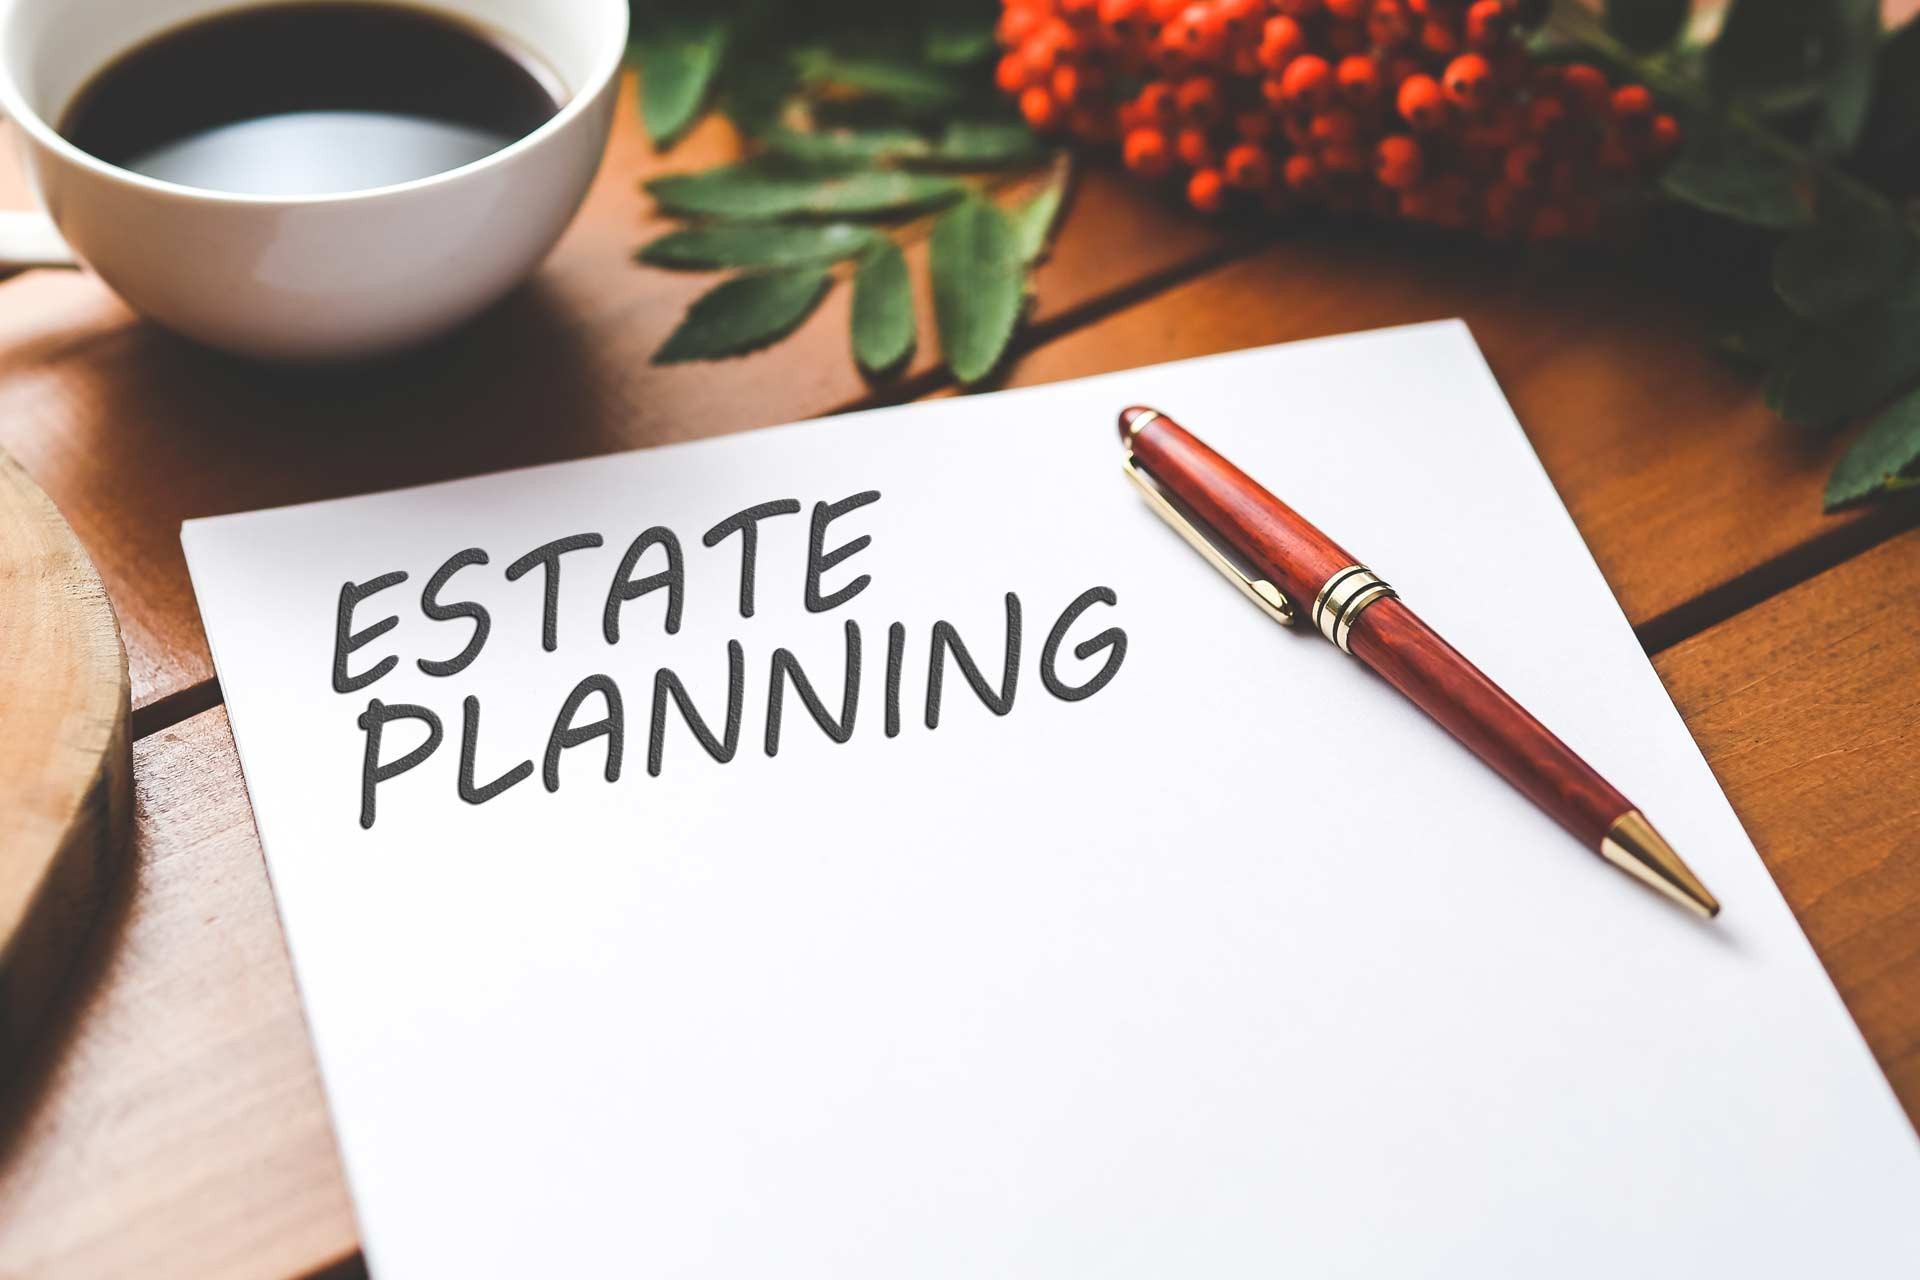 What Do I Need to Know about Estate Planning?